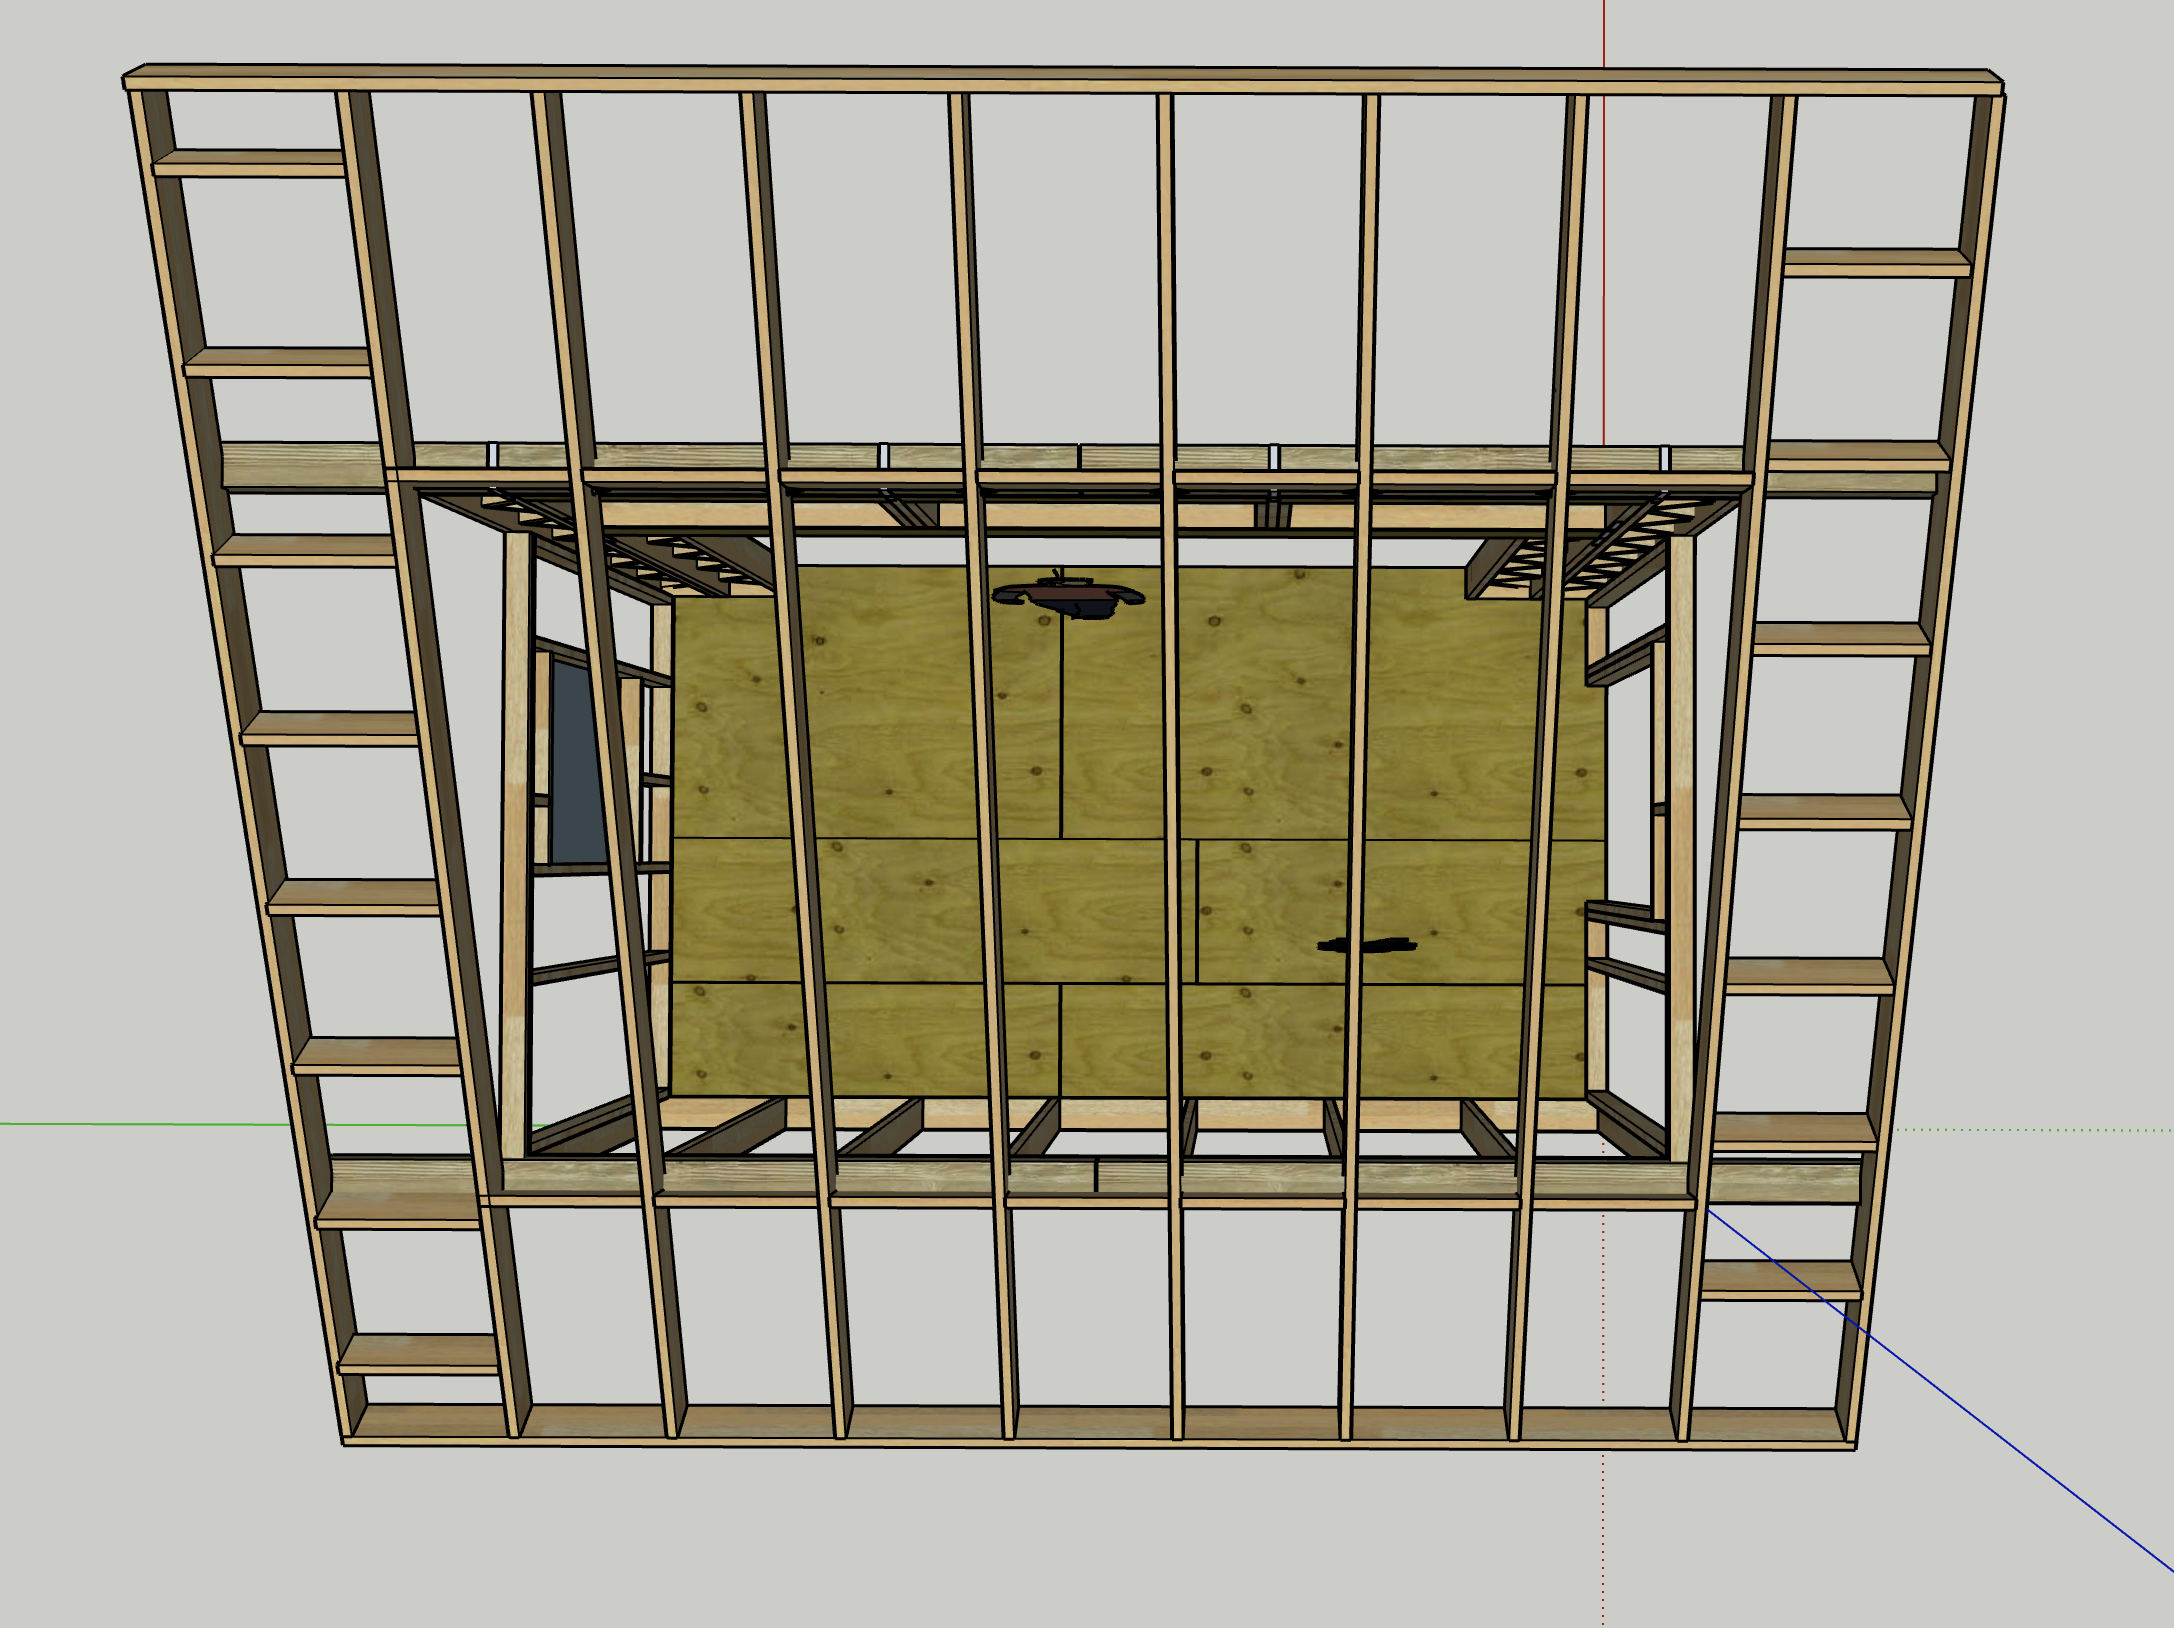 Shed / workshop framing design--is it too ambitious?-screen-shot-2020-04-25-3.36.06-pm.png